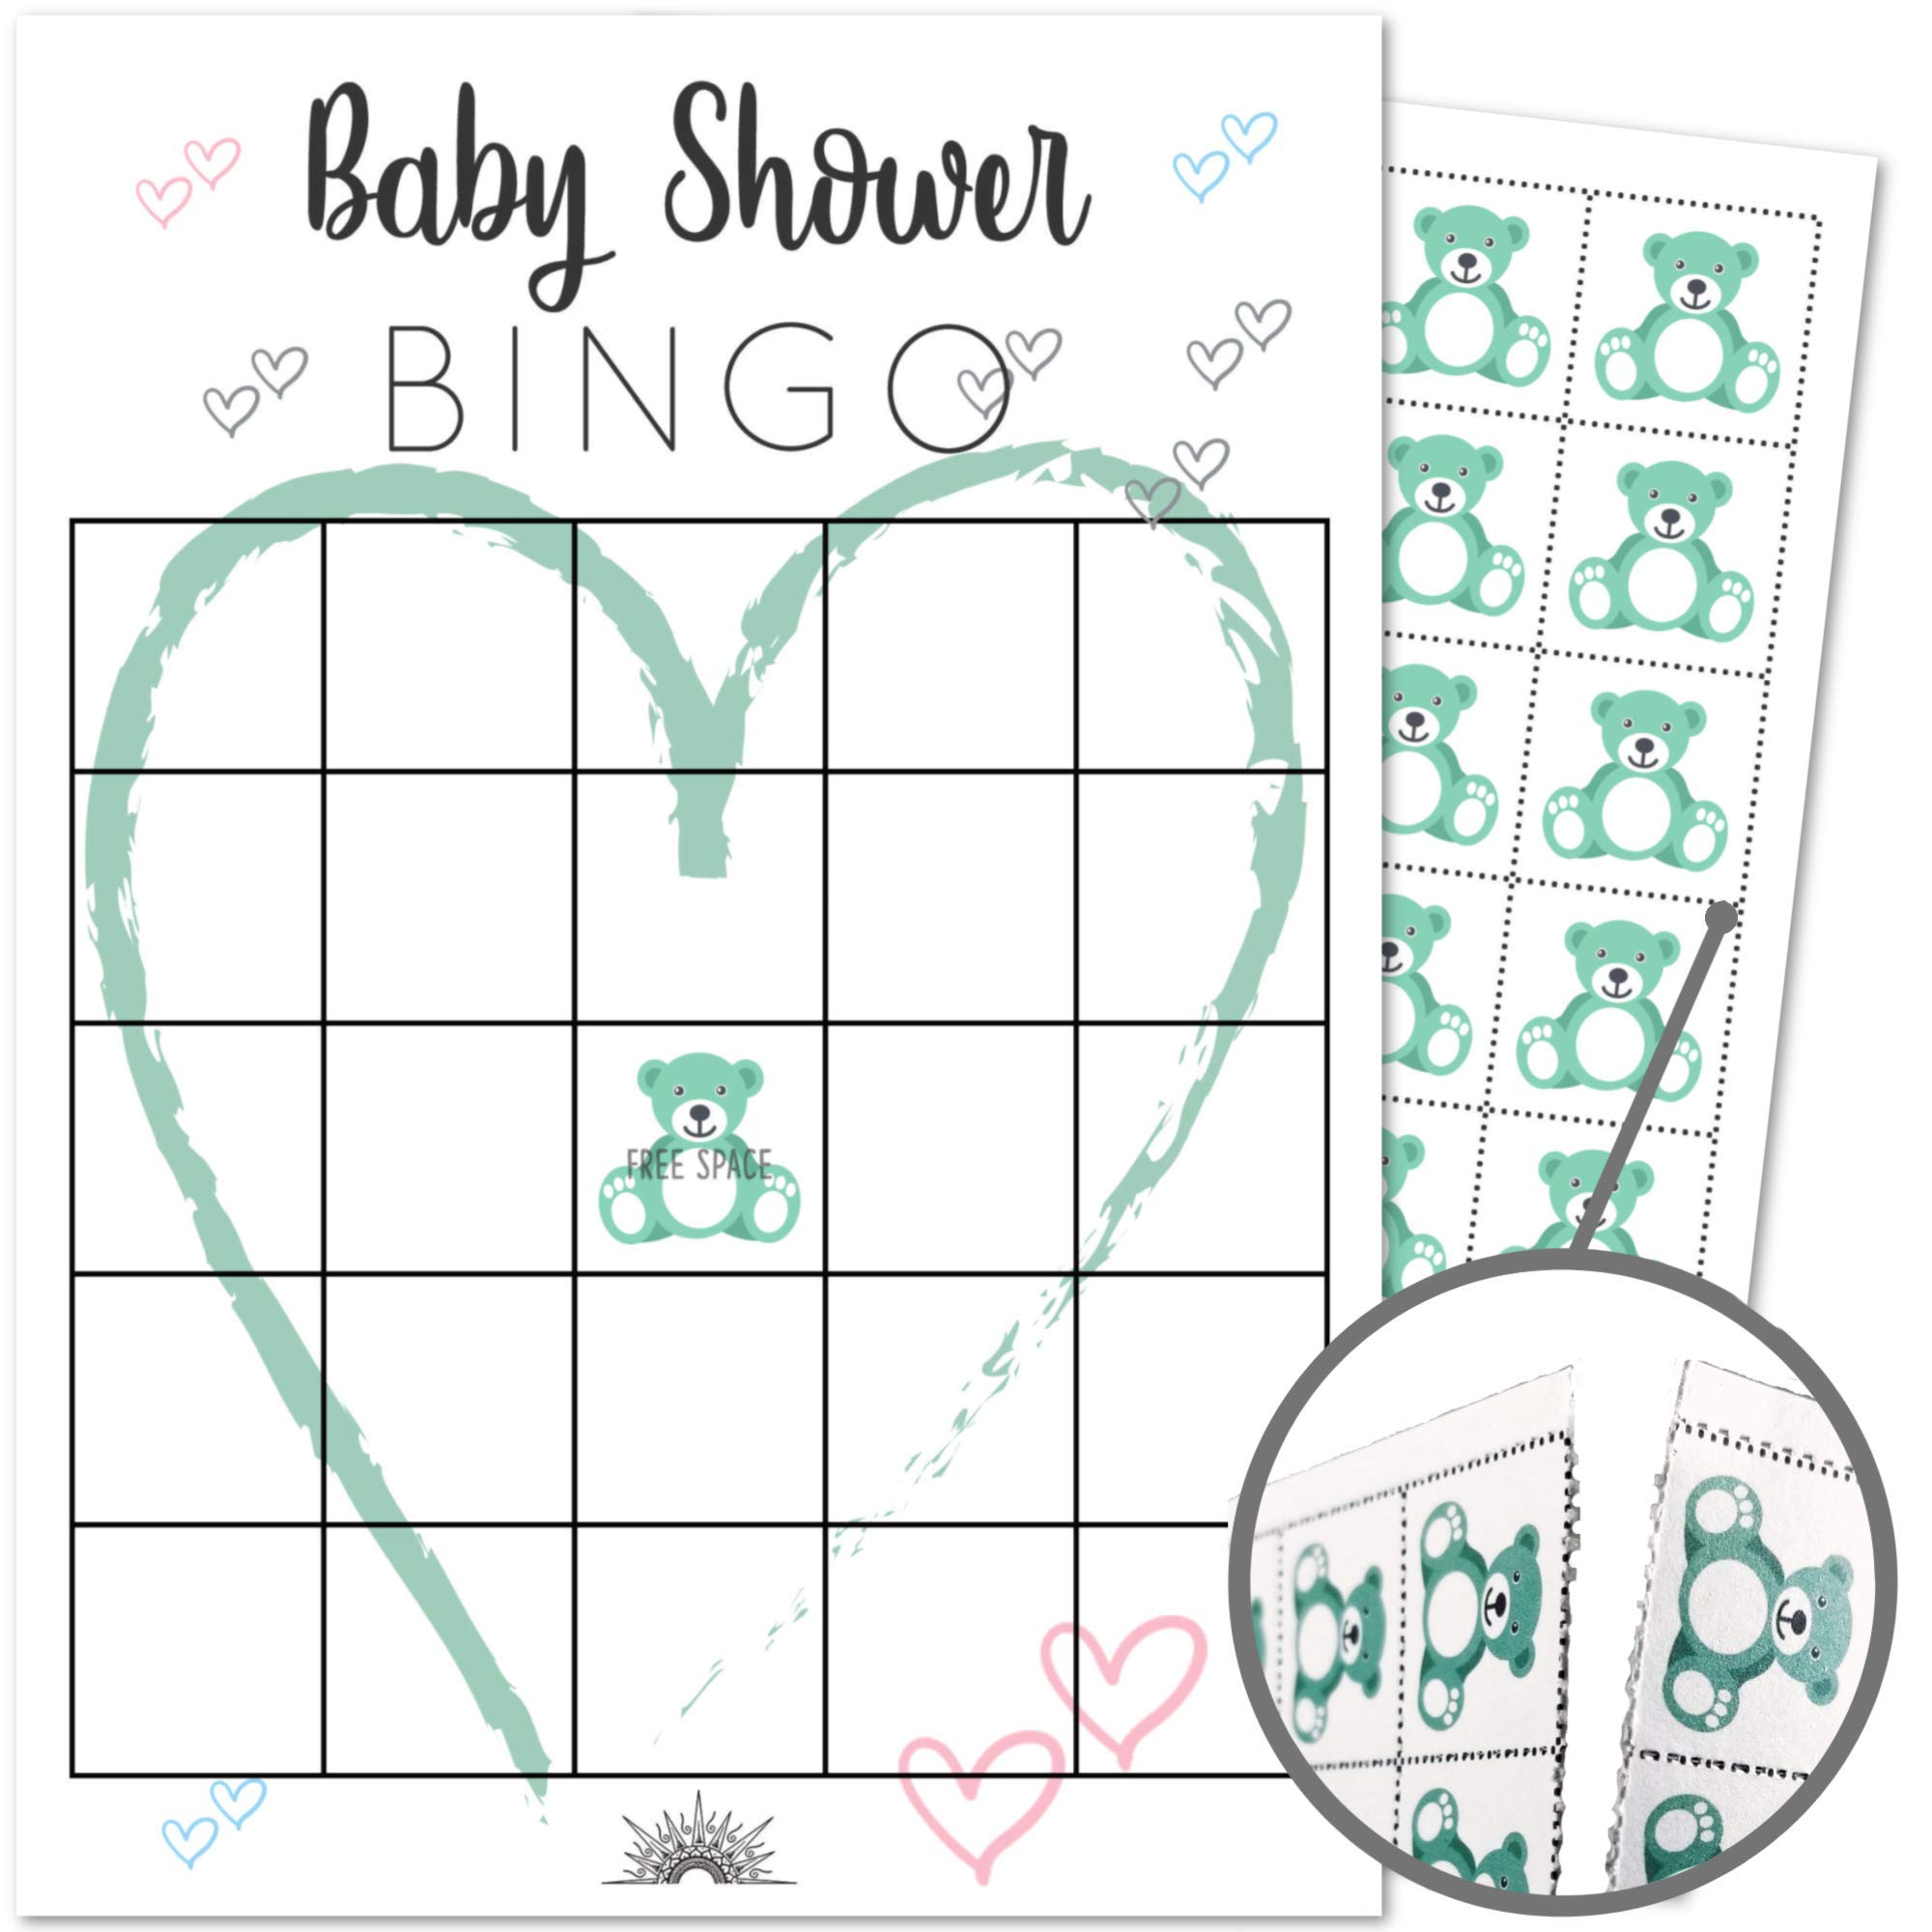 50 Pack Baby Shower Blank Gift Bingo Game Cards | Girl, Boy, Gender Neutral | Perforated Chips Included | Perfect for Sprinkles, Prizes, Favors and Decorations